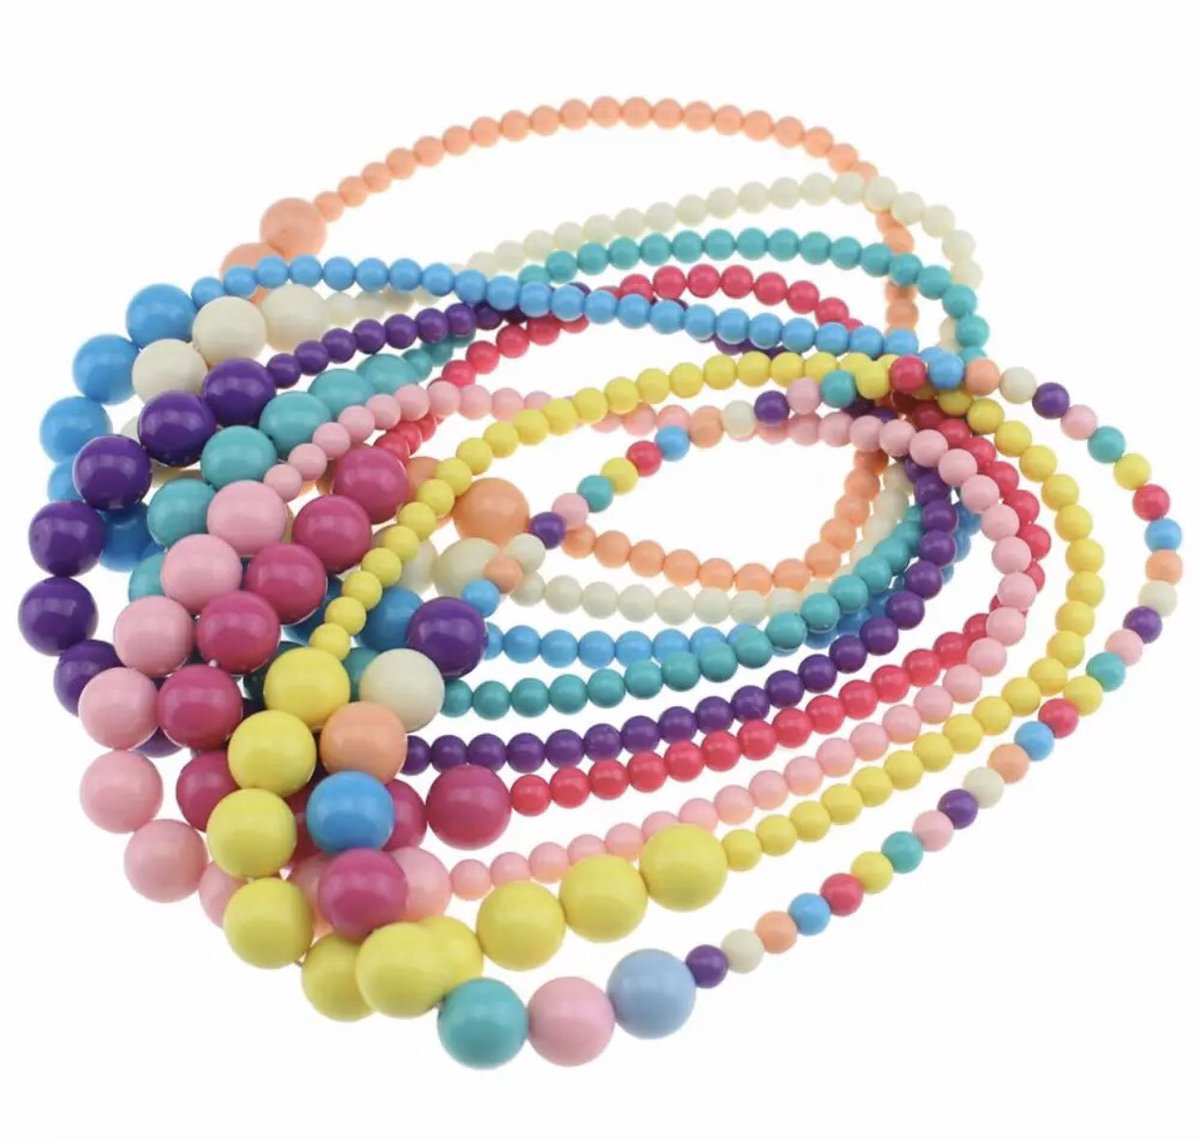 The 80's always seem to come back in style. Gum ball bead necklaces.  Little Pink Mermaid. Whimsical, fun, sweet & sassy pretties for little girls. Our online shop opens soon. . #littlepinkmermaid #kidsfashion #kids #girlythings #girls #girly #accessories #80s #style #fashionpic.twitter.com/sukxAtPU3e